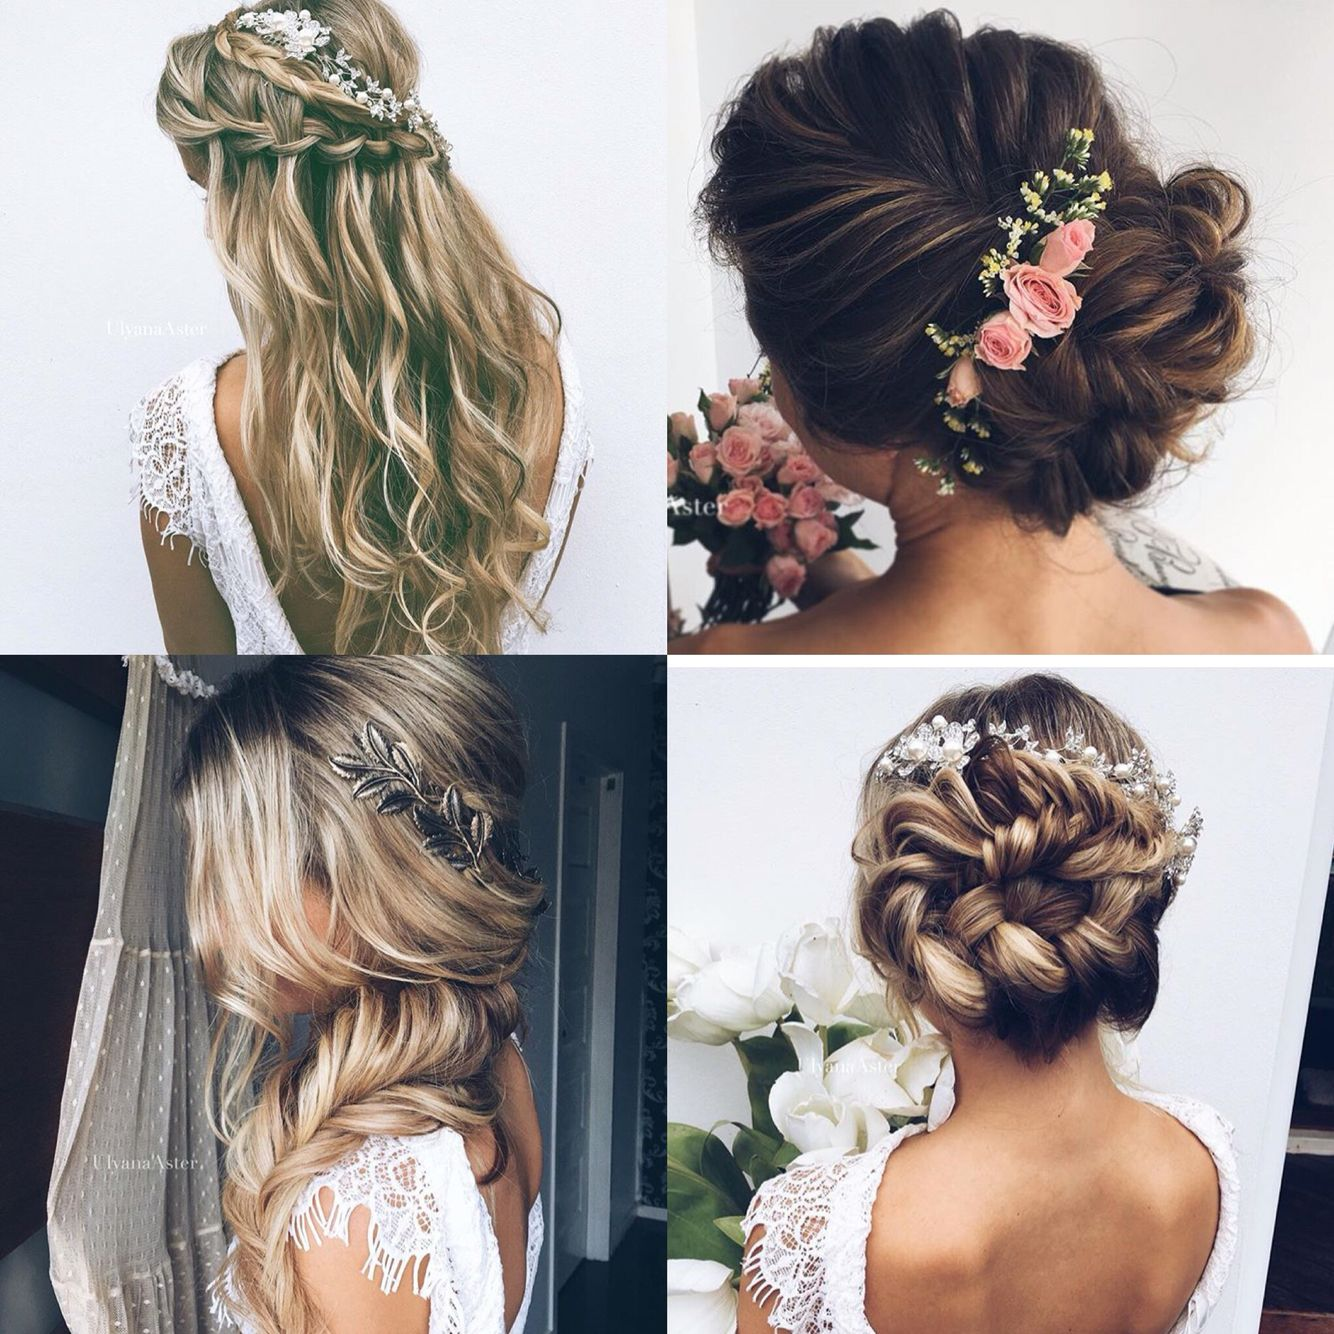 Wedding Hairstyles Boho: Wedding Hair Bridal Hair Vine Flowers Boho Bohemian